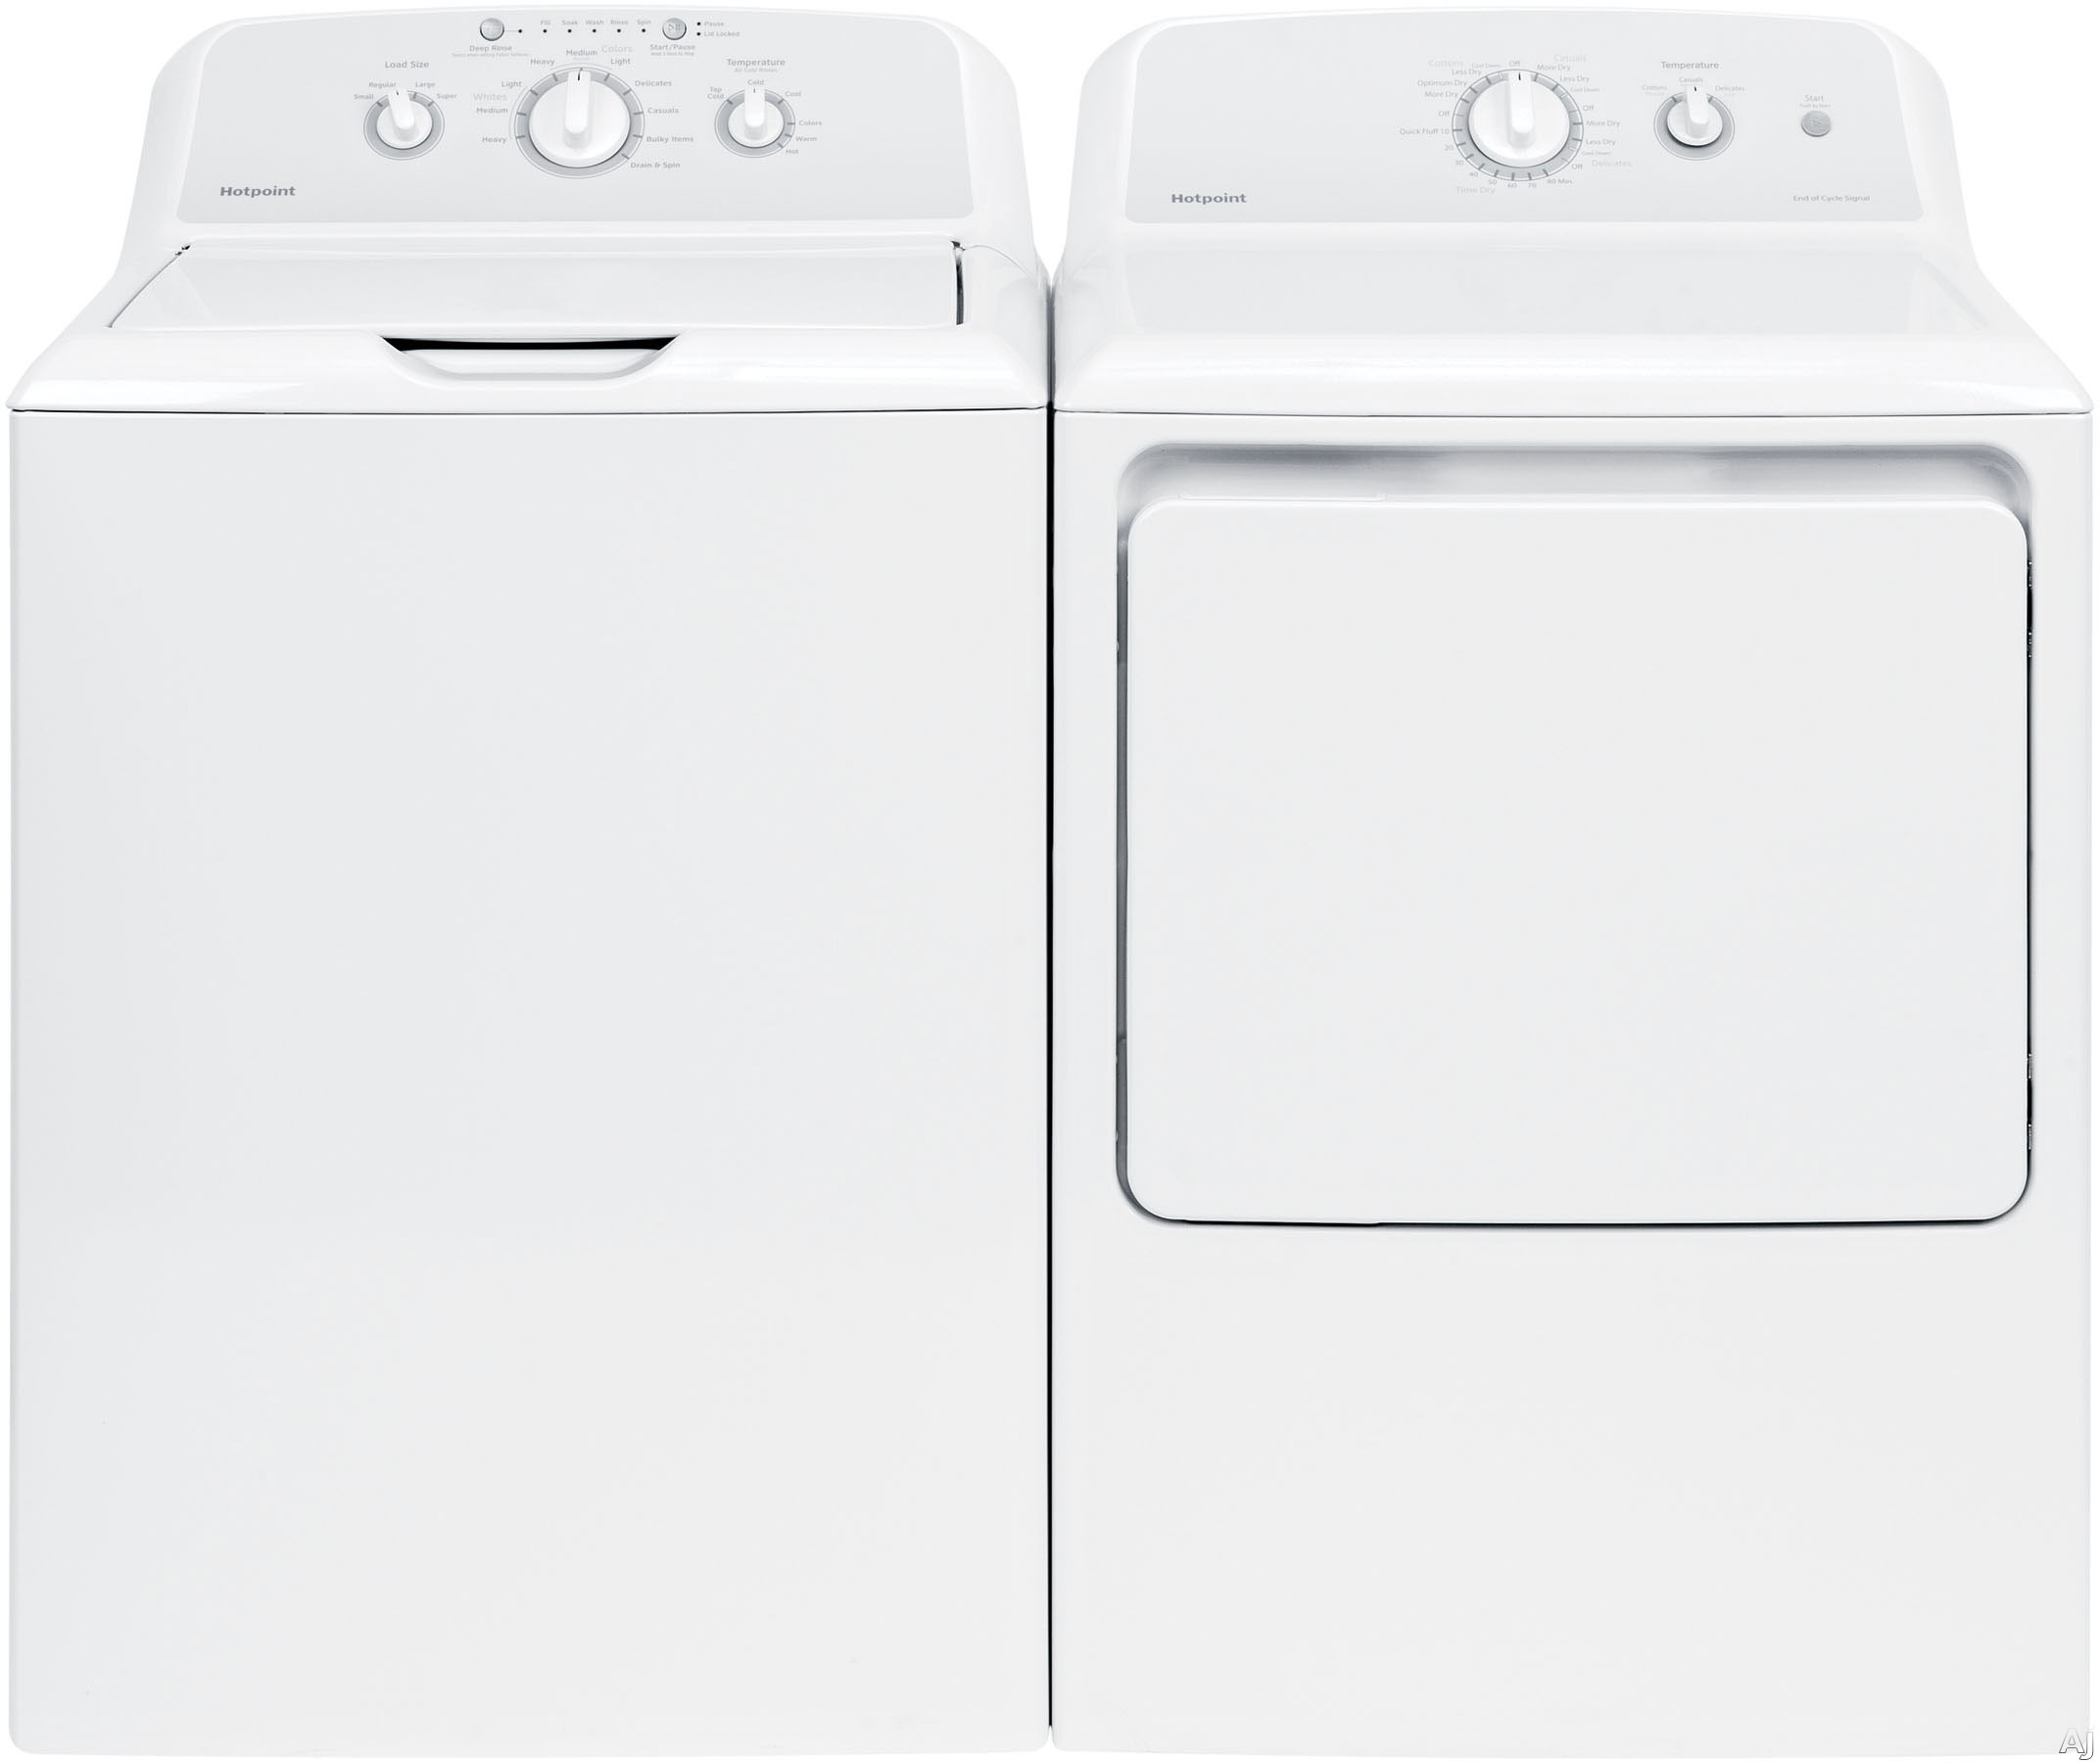 Hotpoint Washer Dryer Combo Hotpoint Hot240tl Hotpoint 240 Series Top Load Washer Dryer Pair